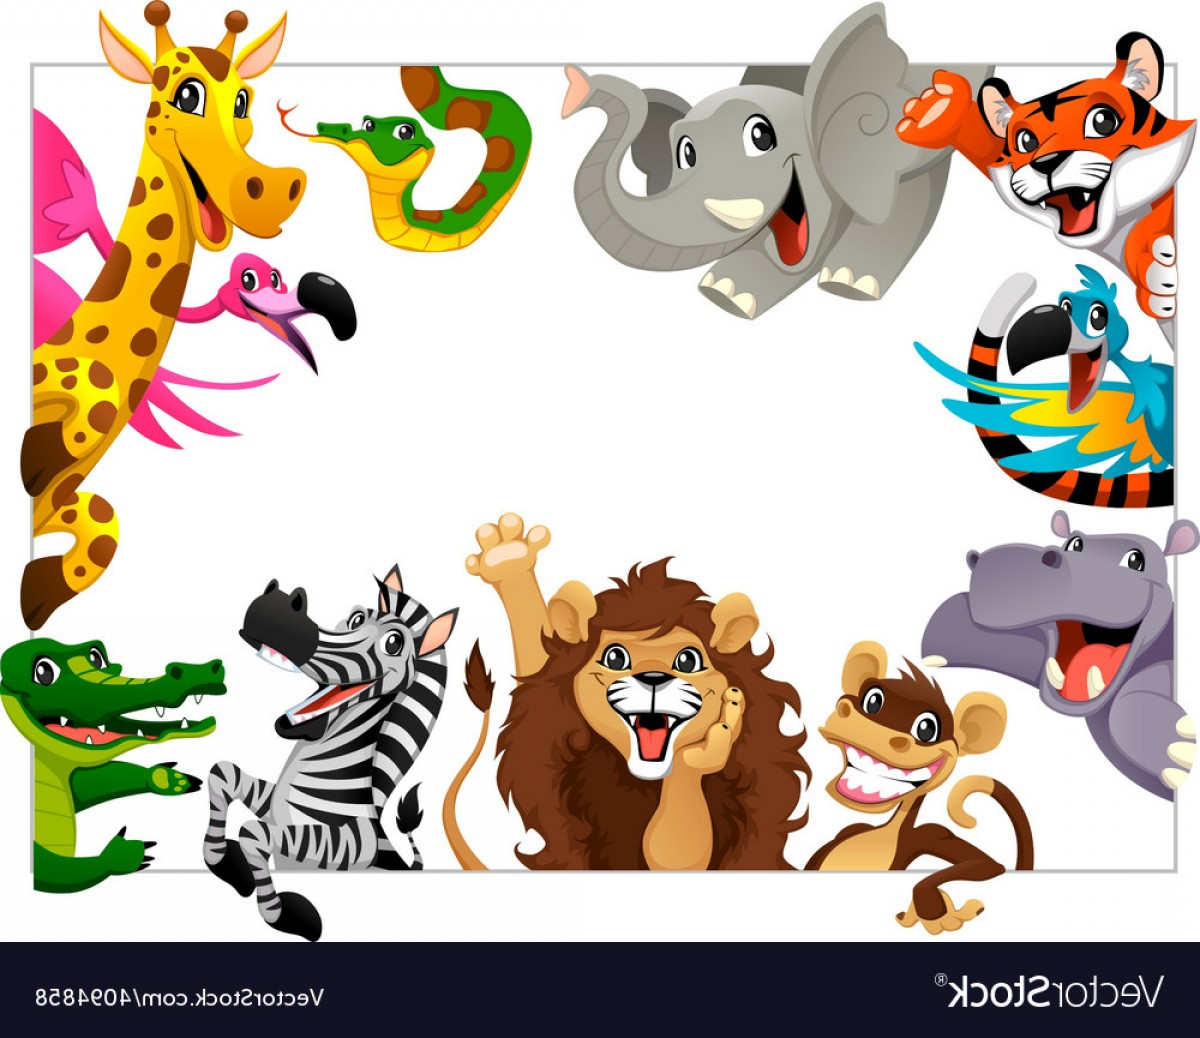 Jungle Animals Clip Art Vector: Funny Group Of Jungle Animals Vector